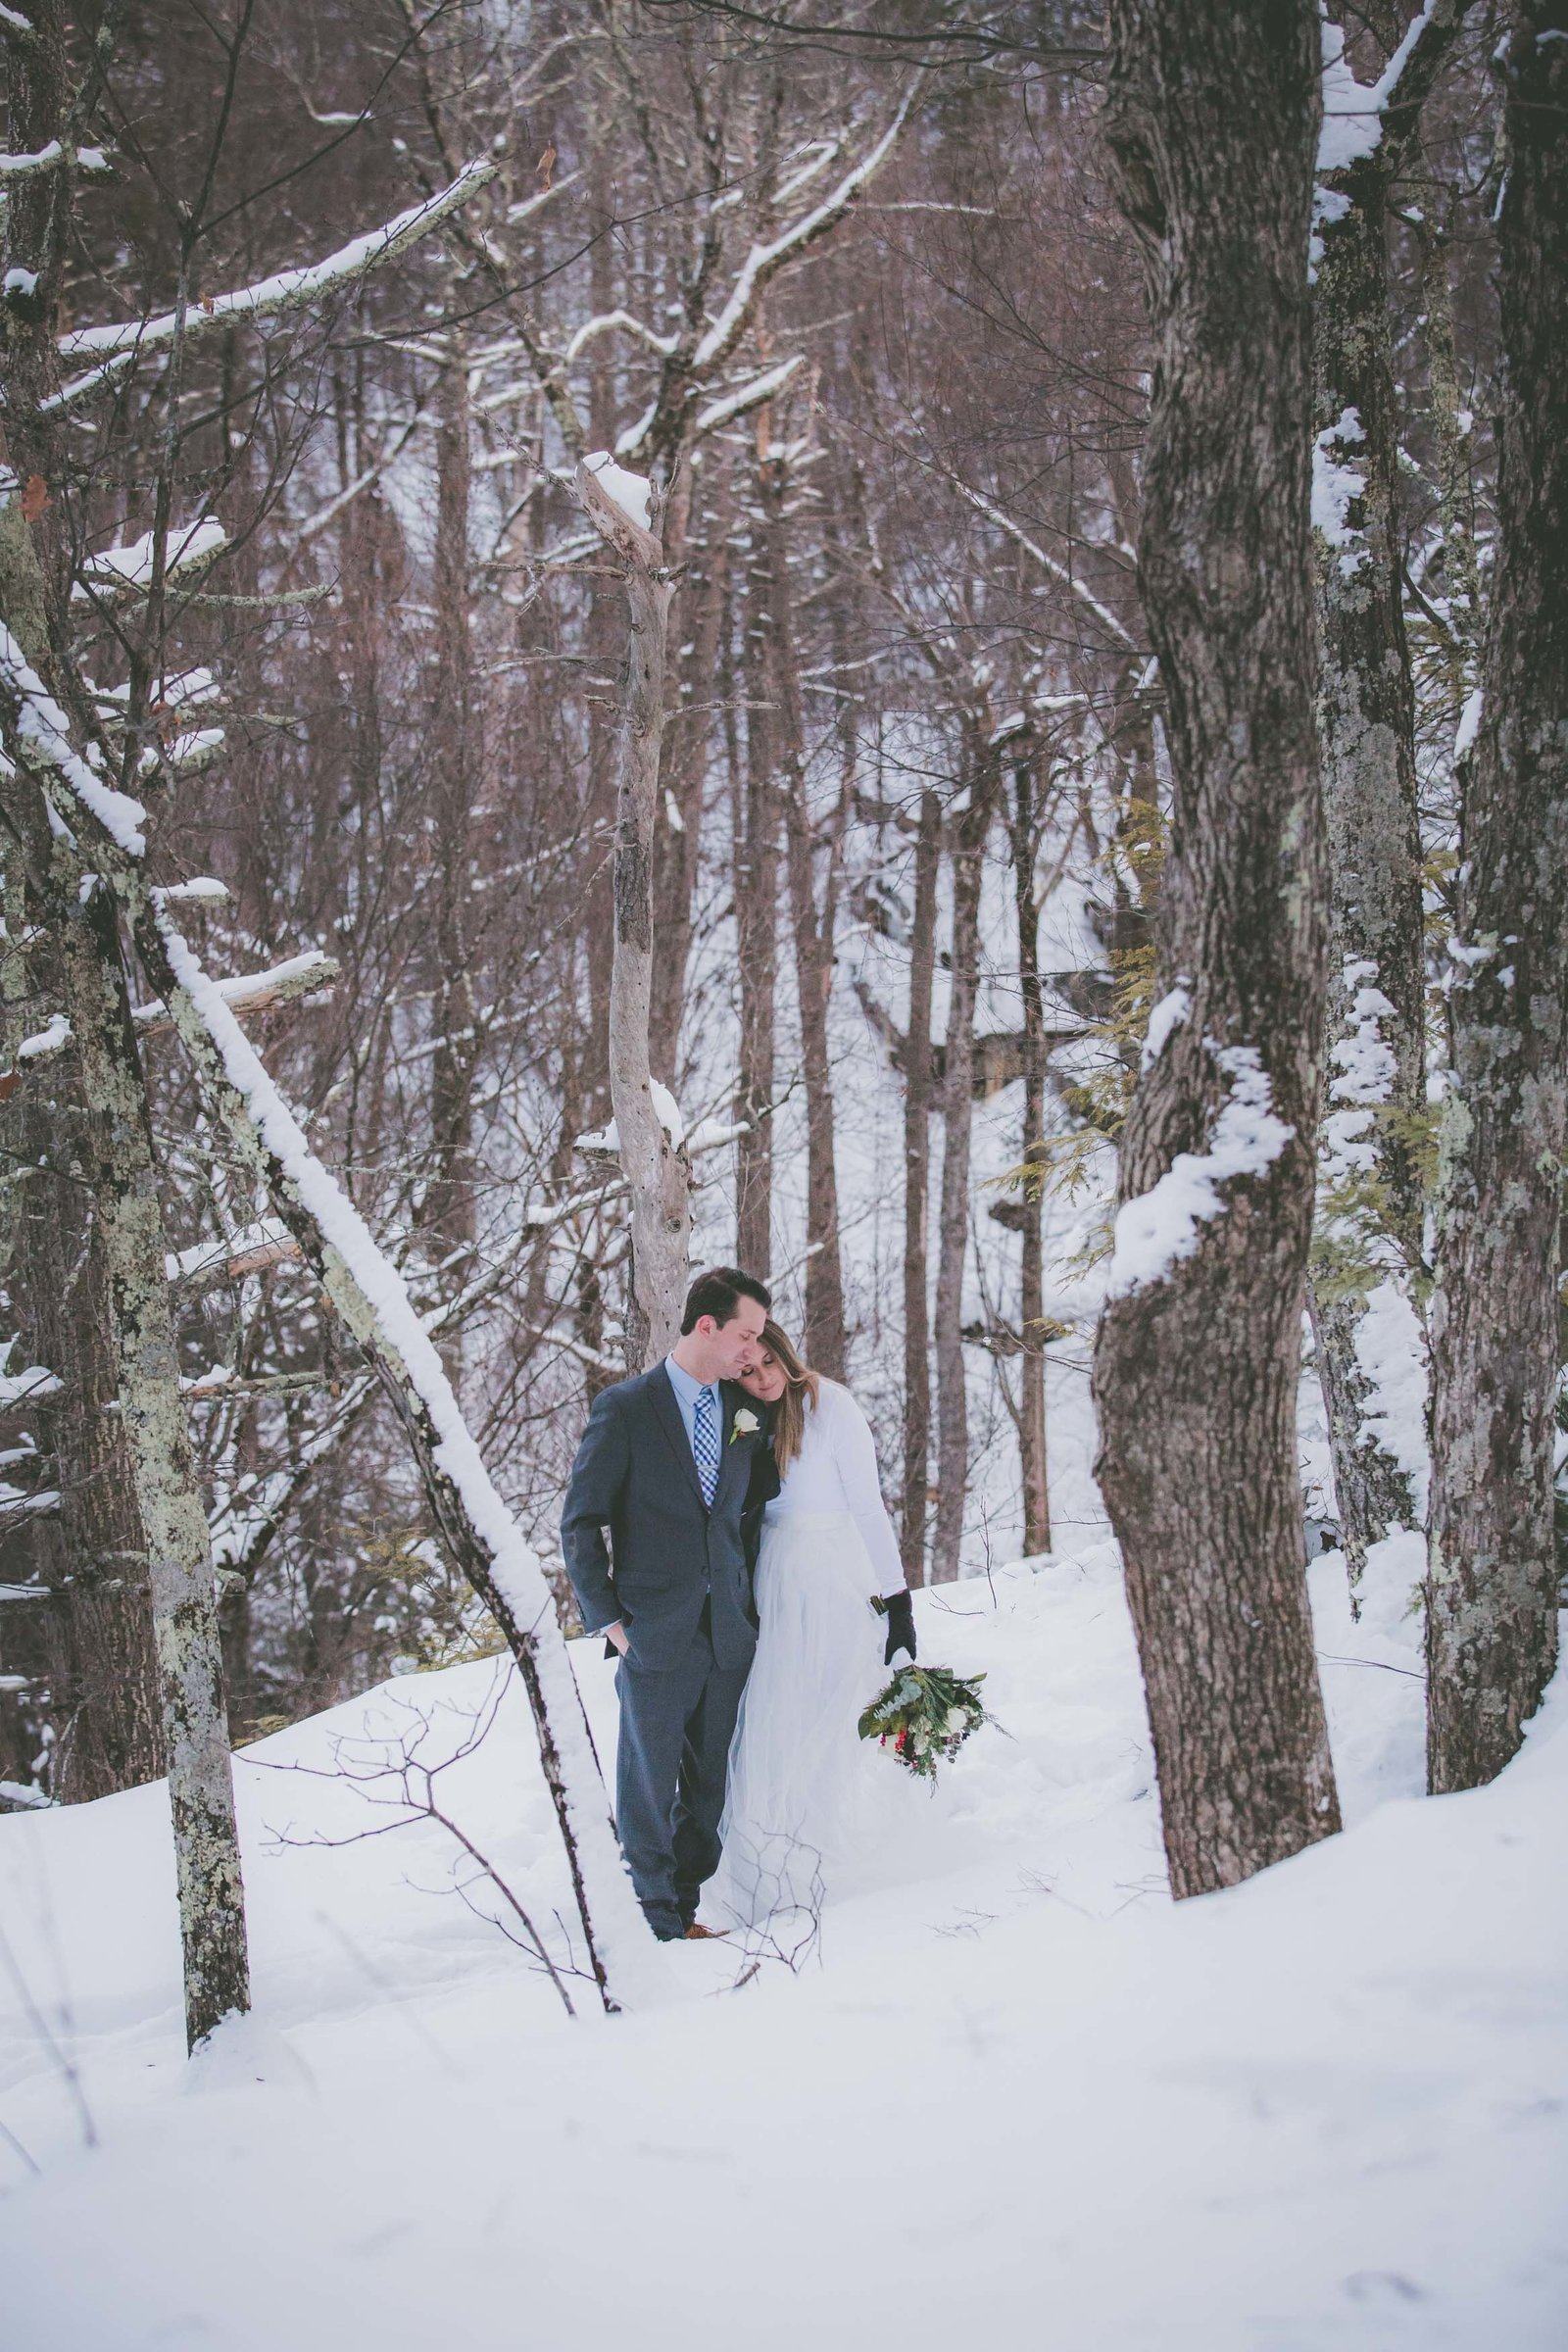 Bride and groom close eyes and cuddle each other among upstate New York snow covered trees.